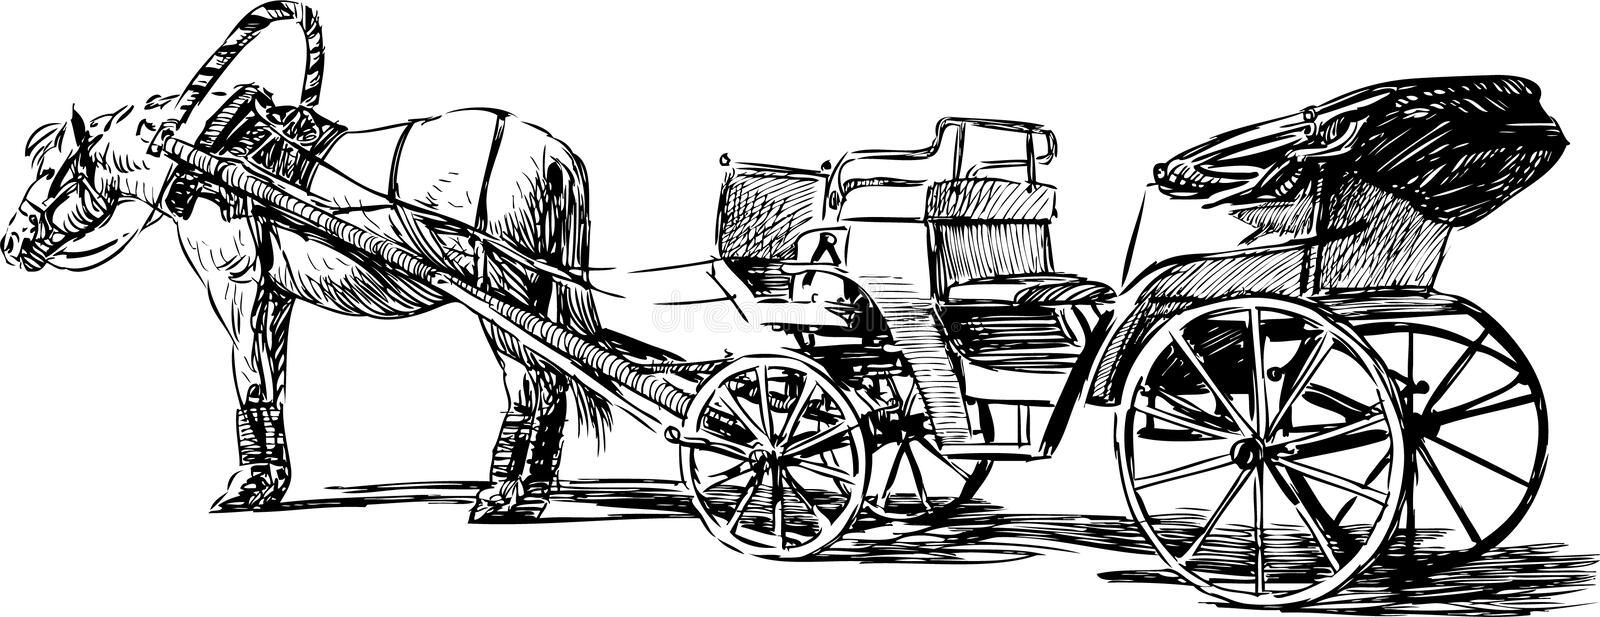 Horse and carriage stock vector. Illustration of realistic